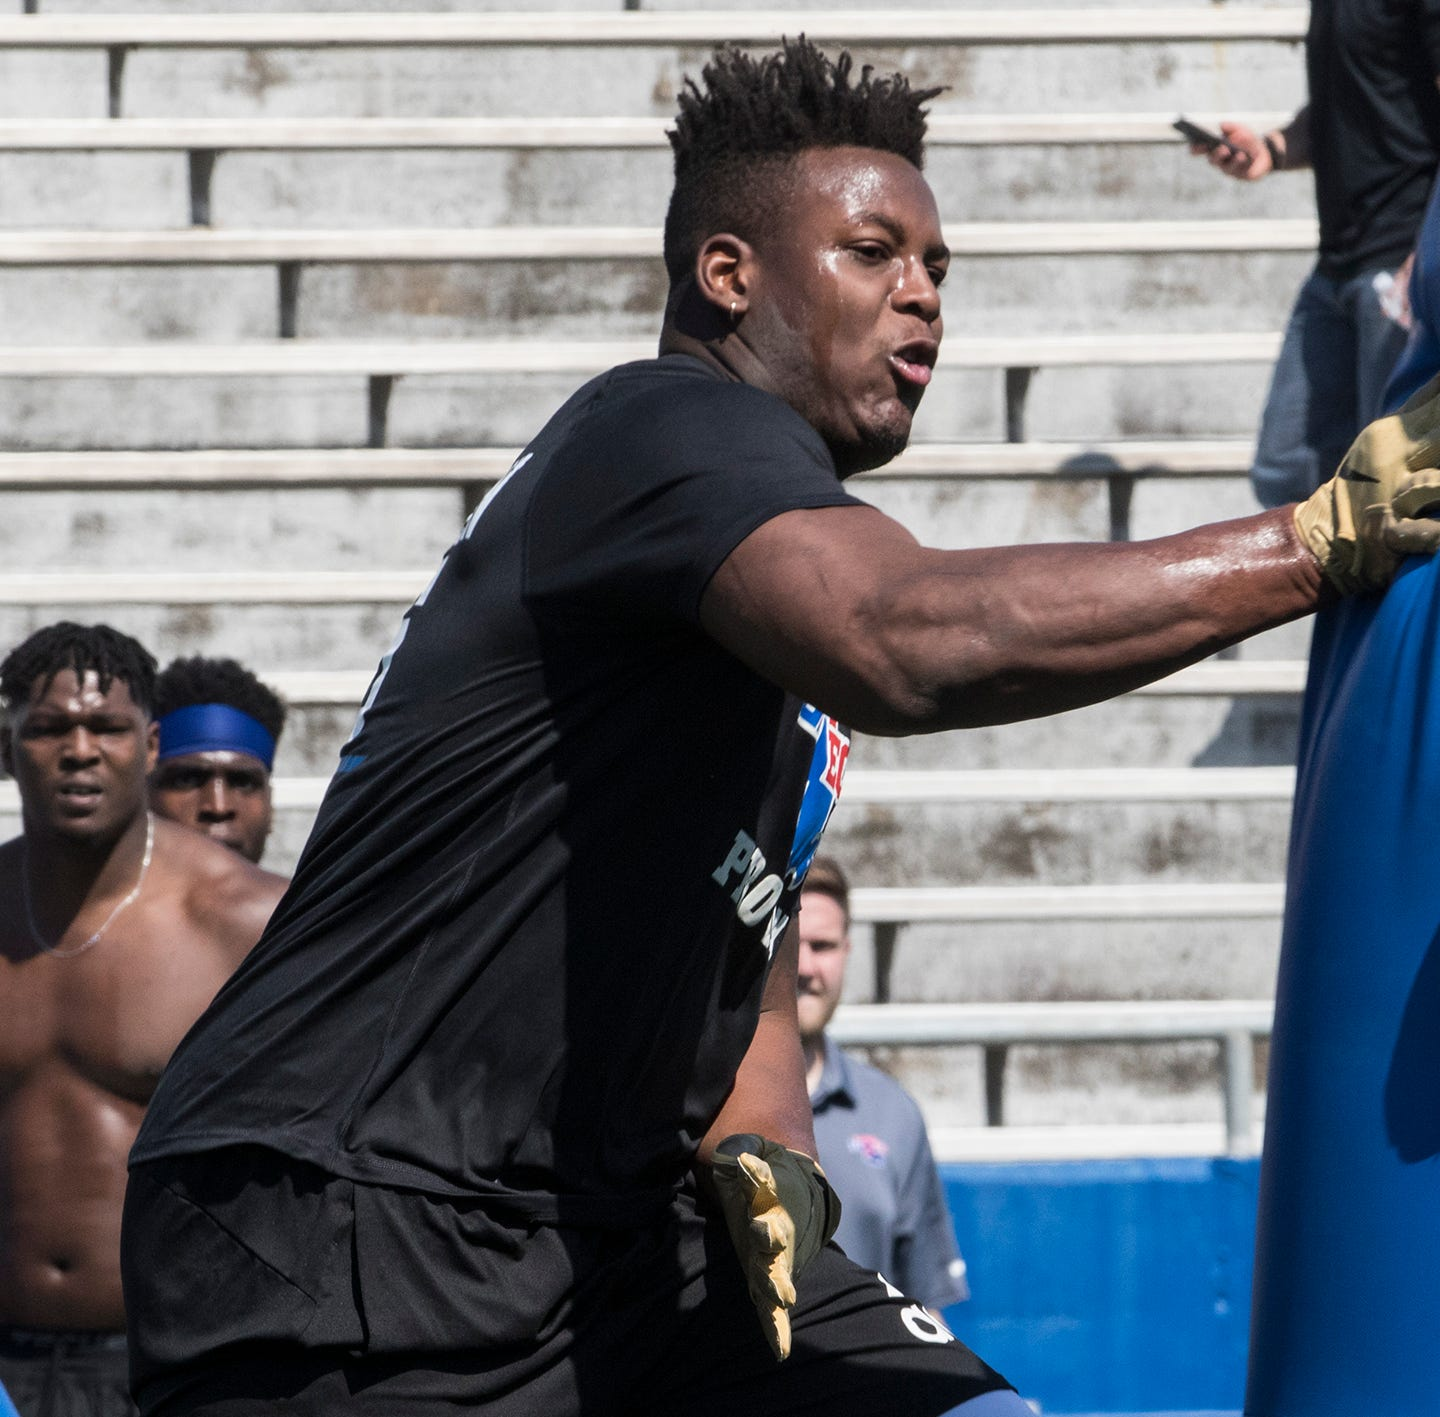 'What you missed': LA Tech's Ferguson shakes off NFL combine ordeal, shines at Pro Day